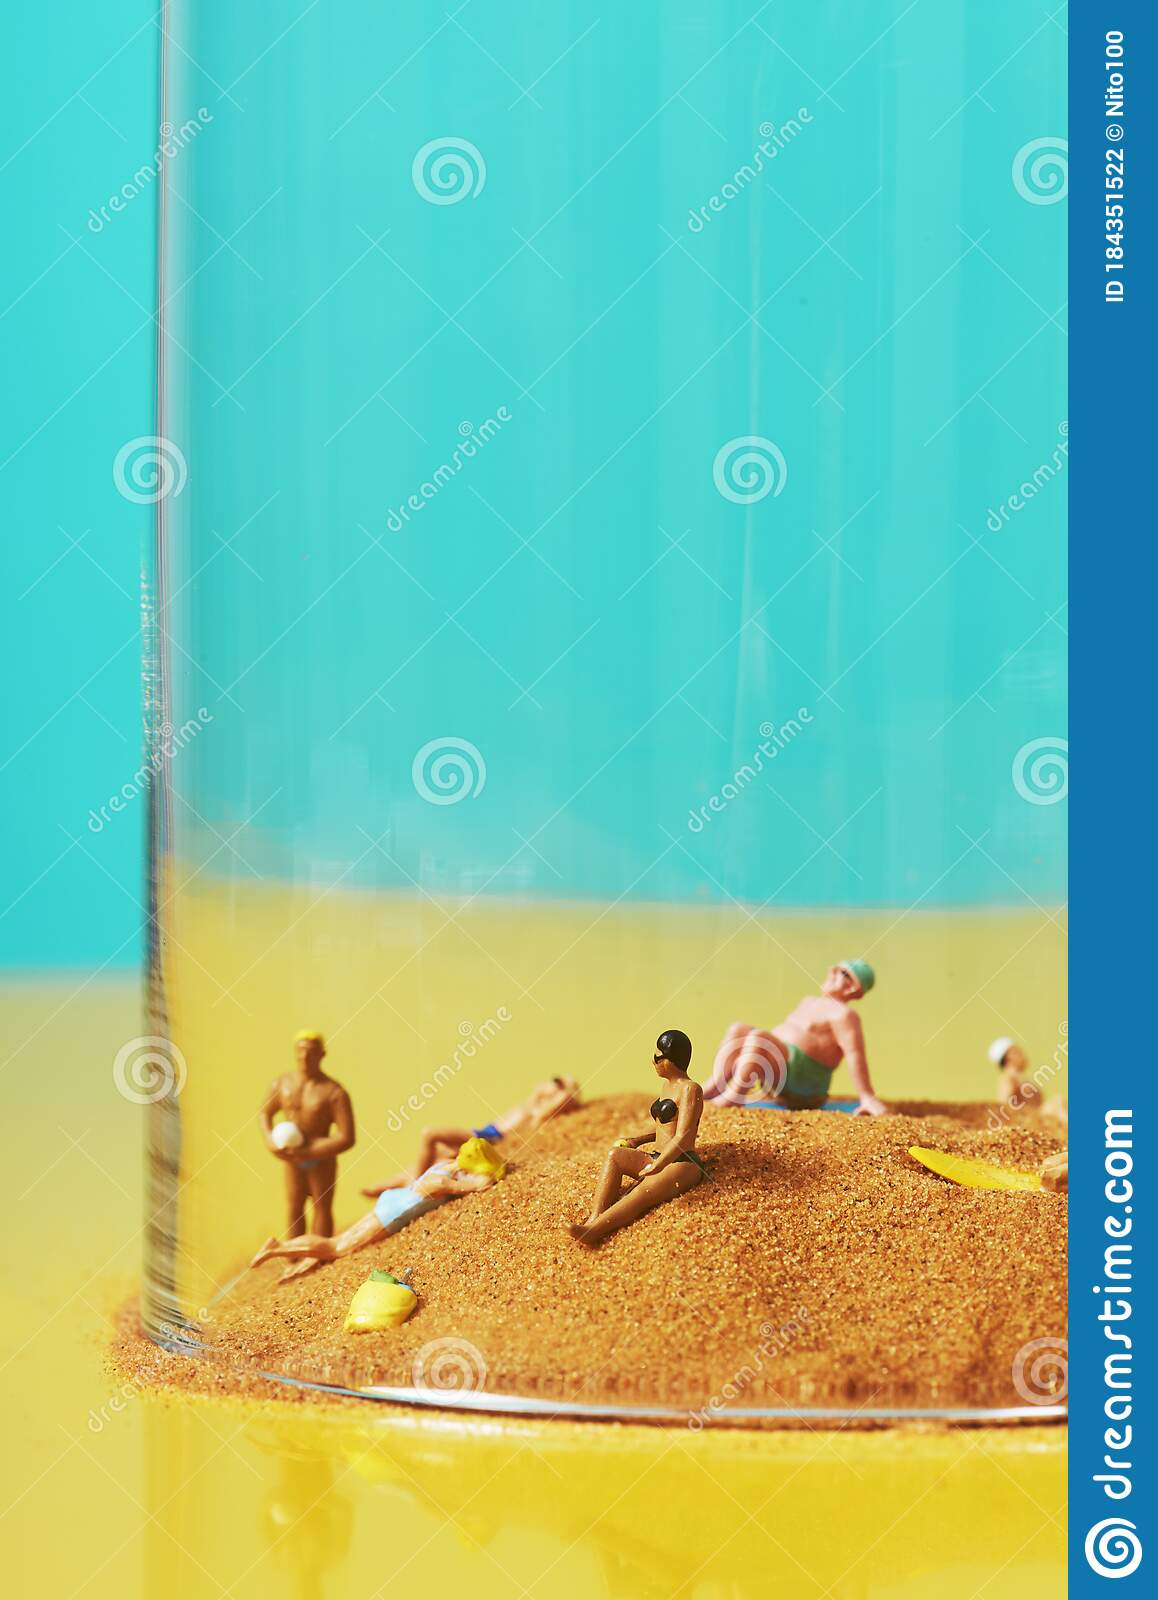 Miniature People On The Sand In A Bell Jar Stock Photo Image Of Heat Bather 184351522